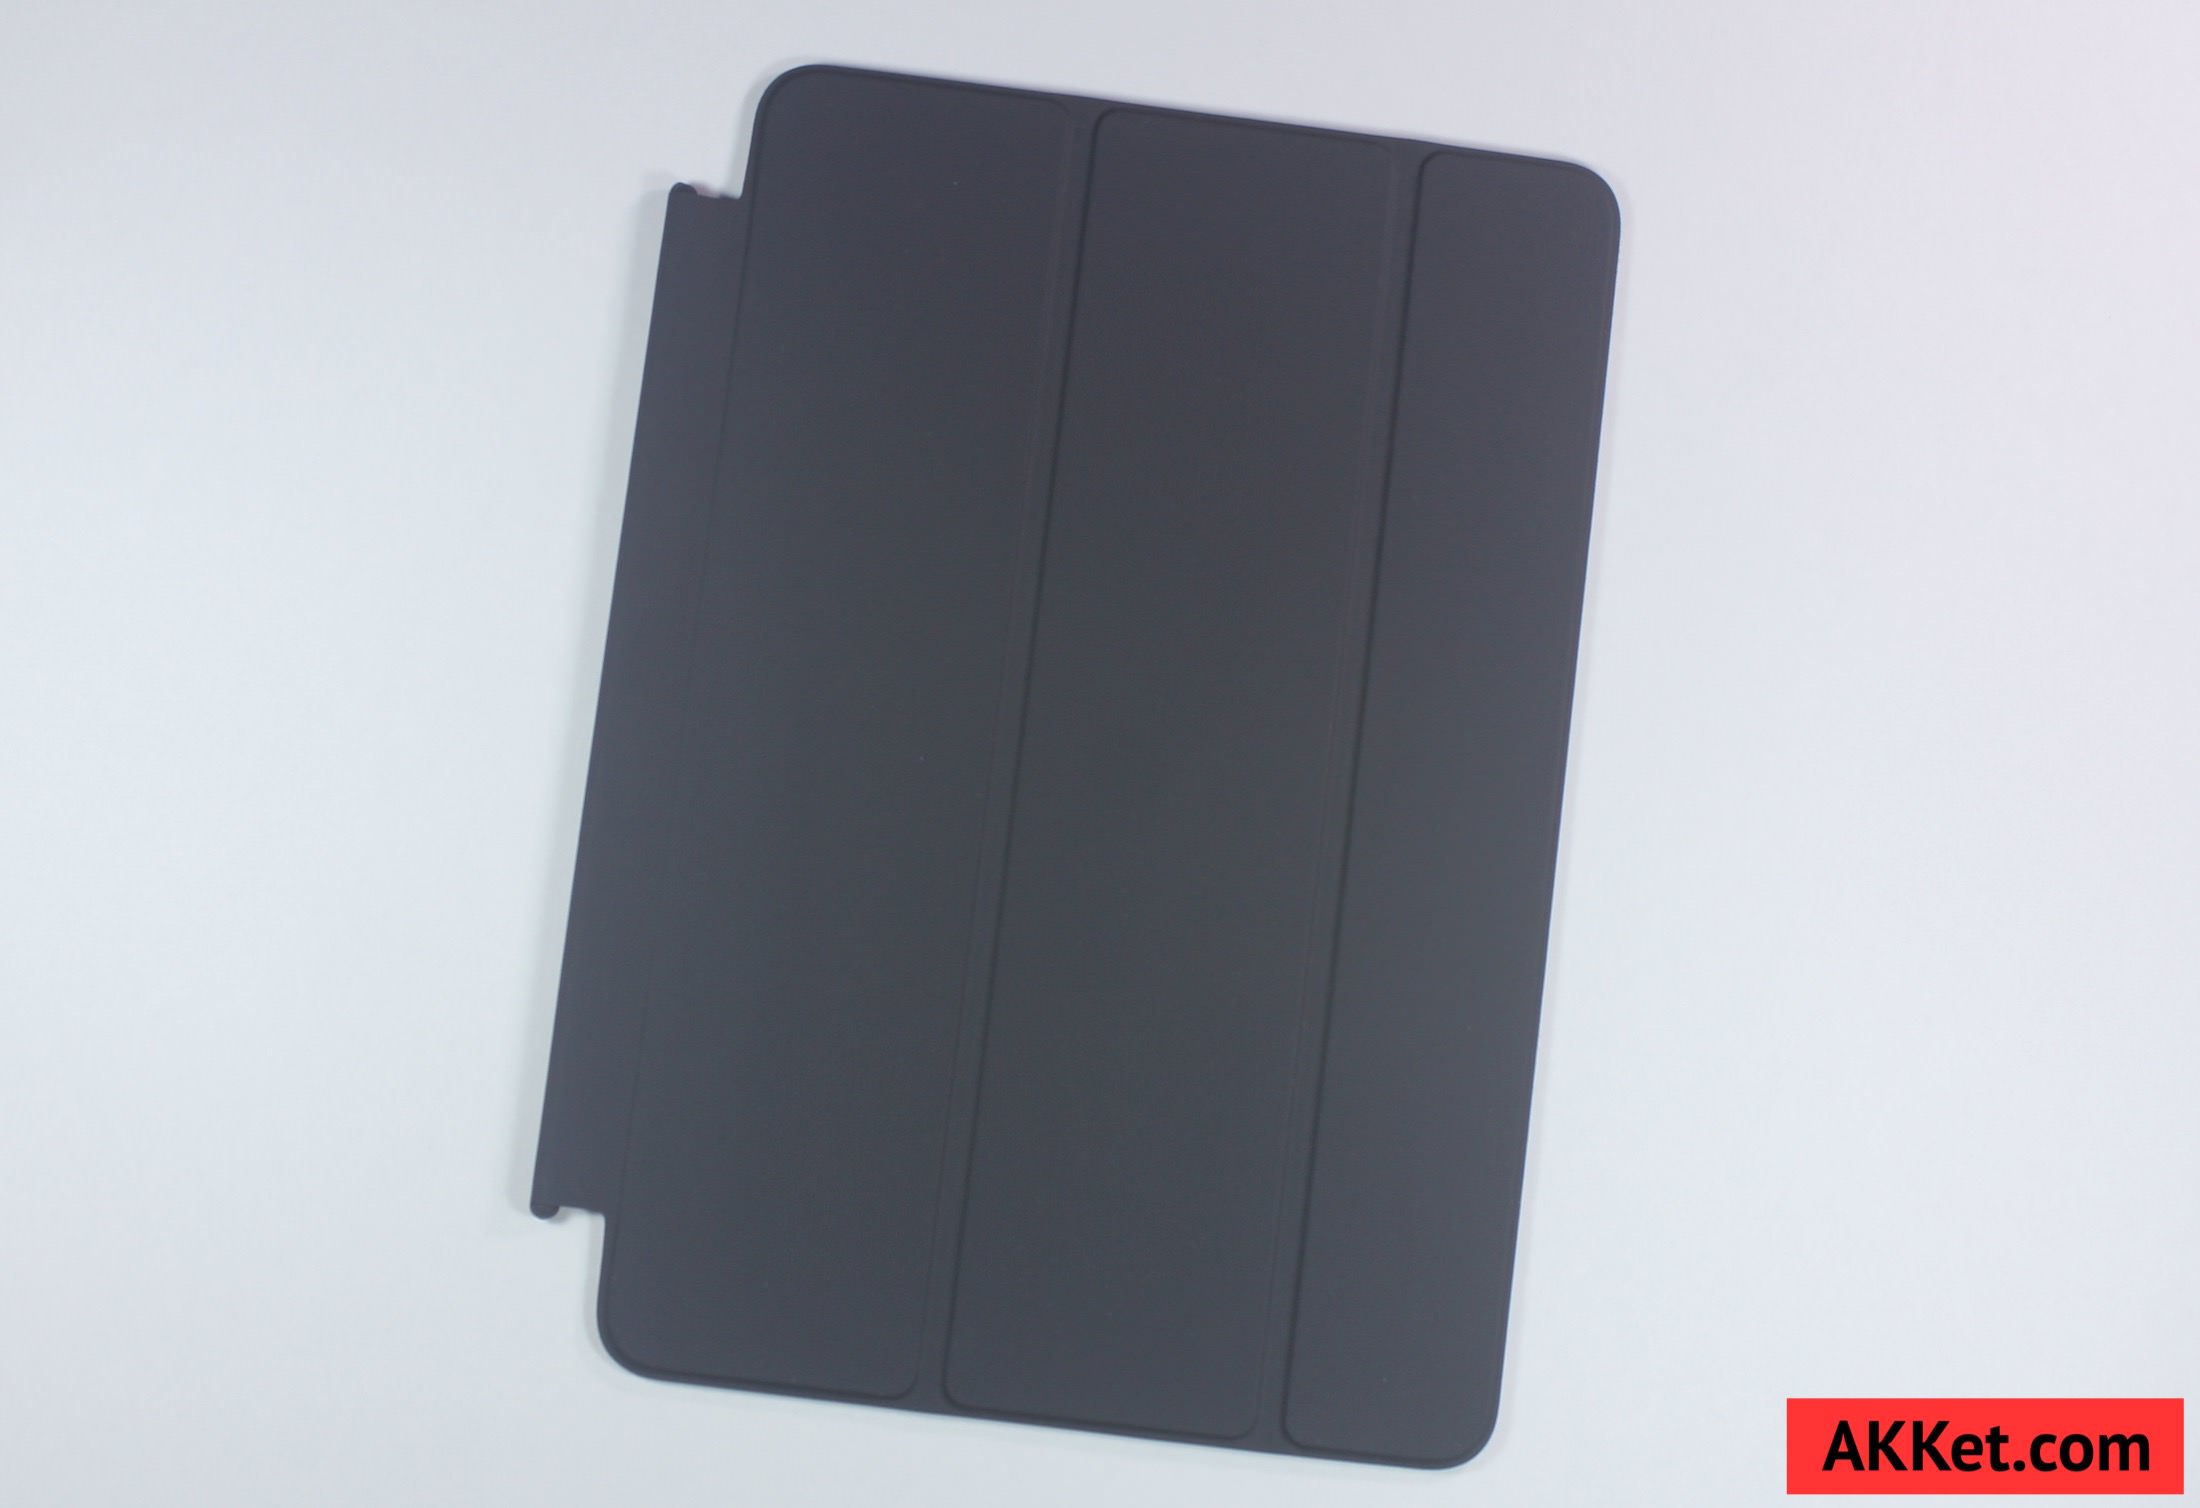 Apple Smart Cover iPad mini 4 review Charcoal Gray 10